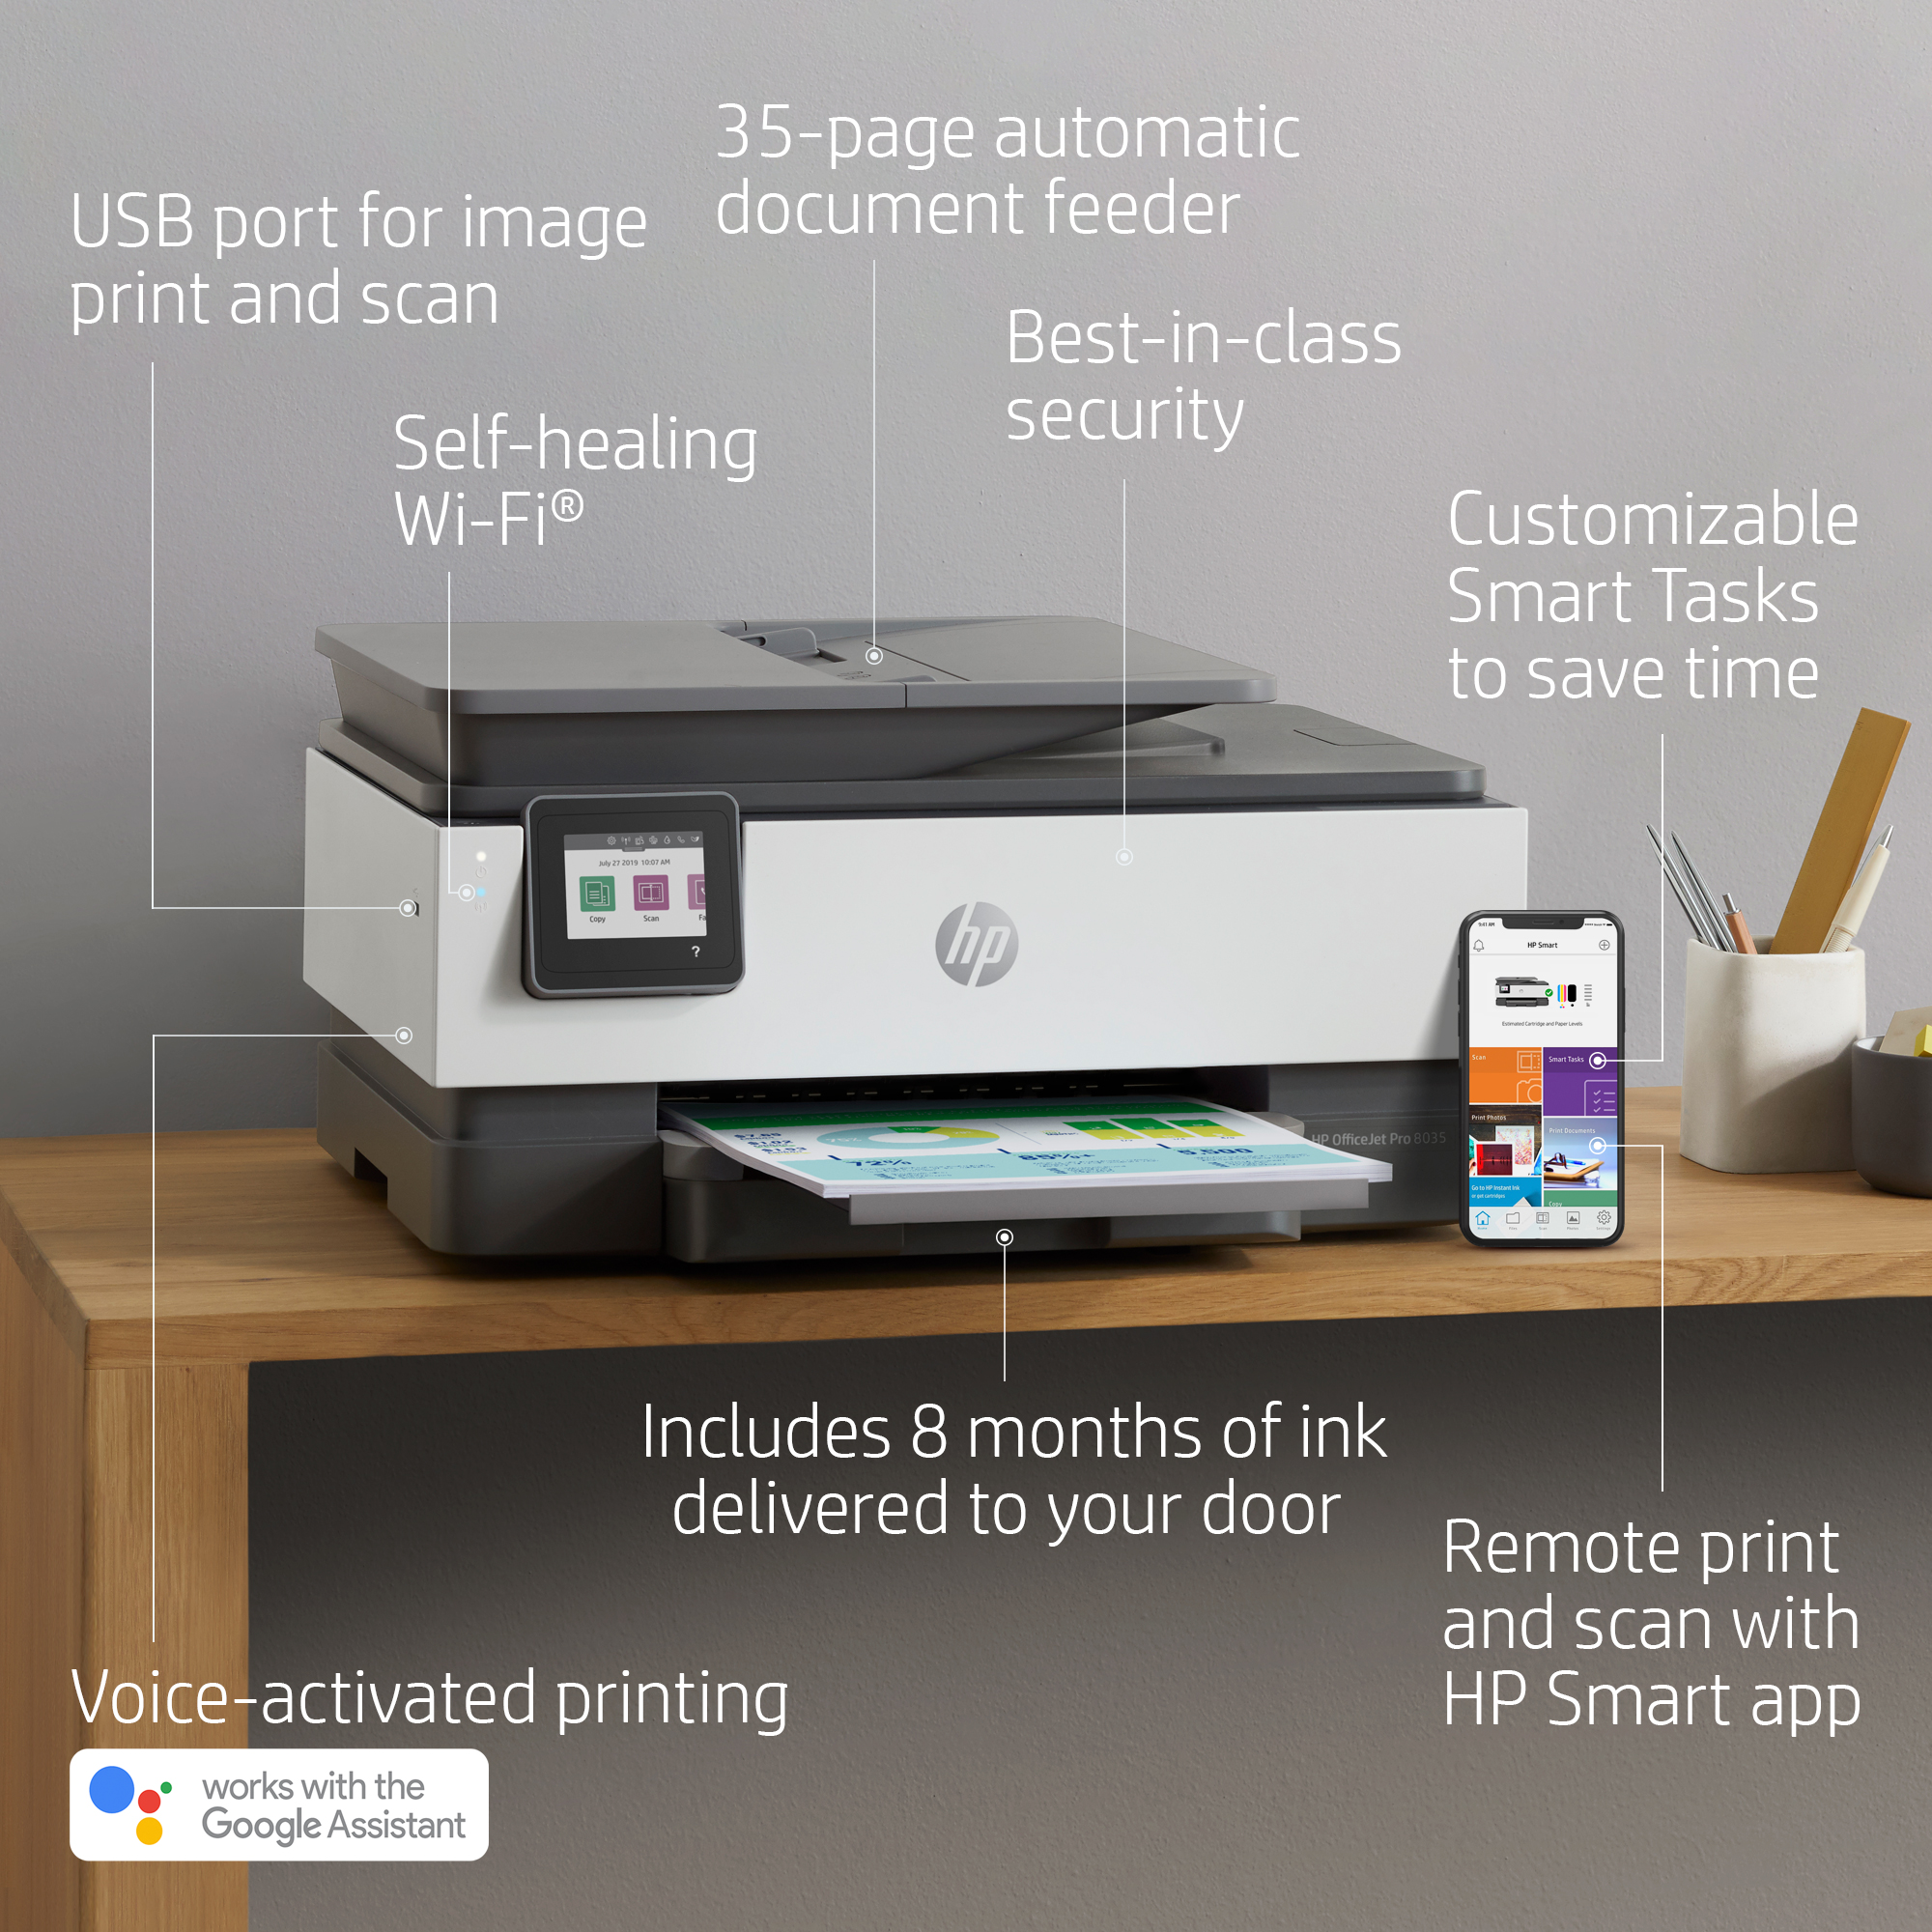 HP OfficeJet Pro 8035 All-in-One Wireless Printer, Includes 8 Months of Ink  Delivered to Your Door, Basalt (5LJ23A)